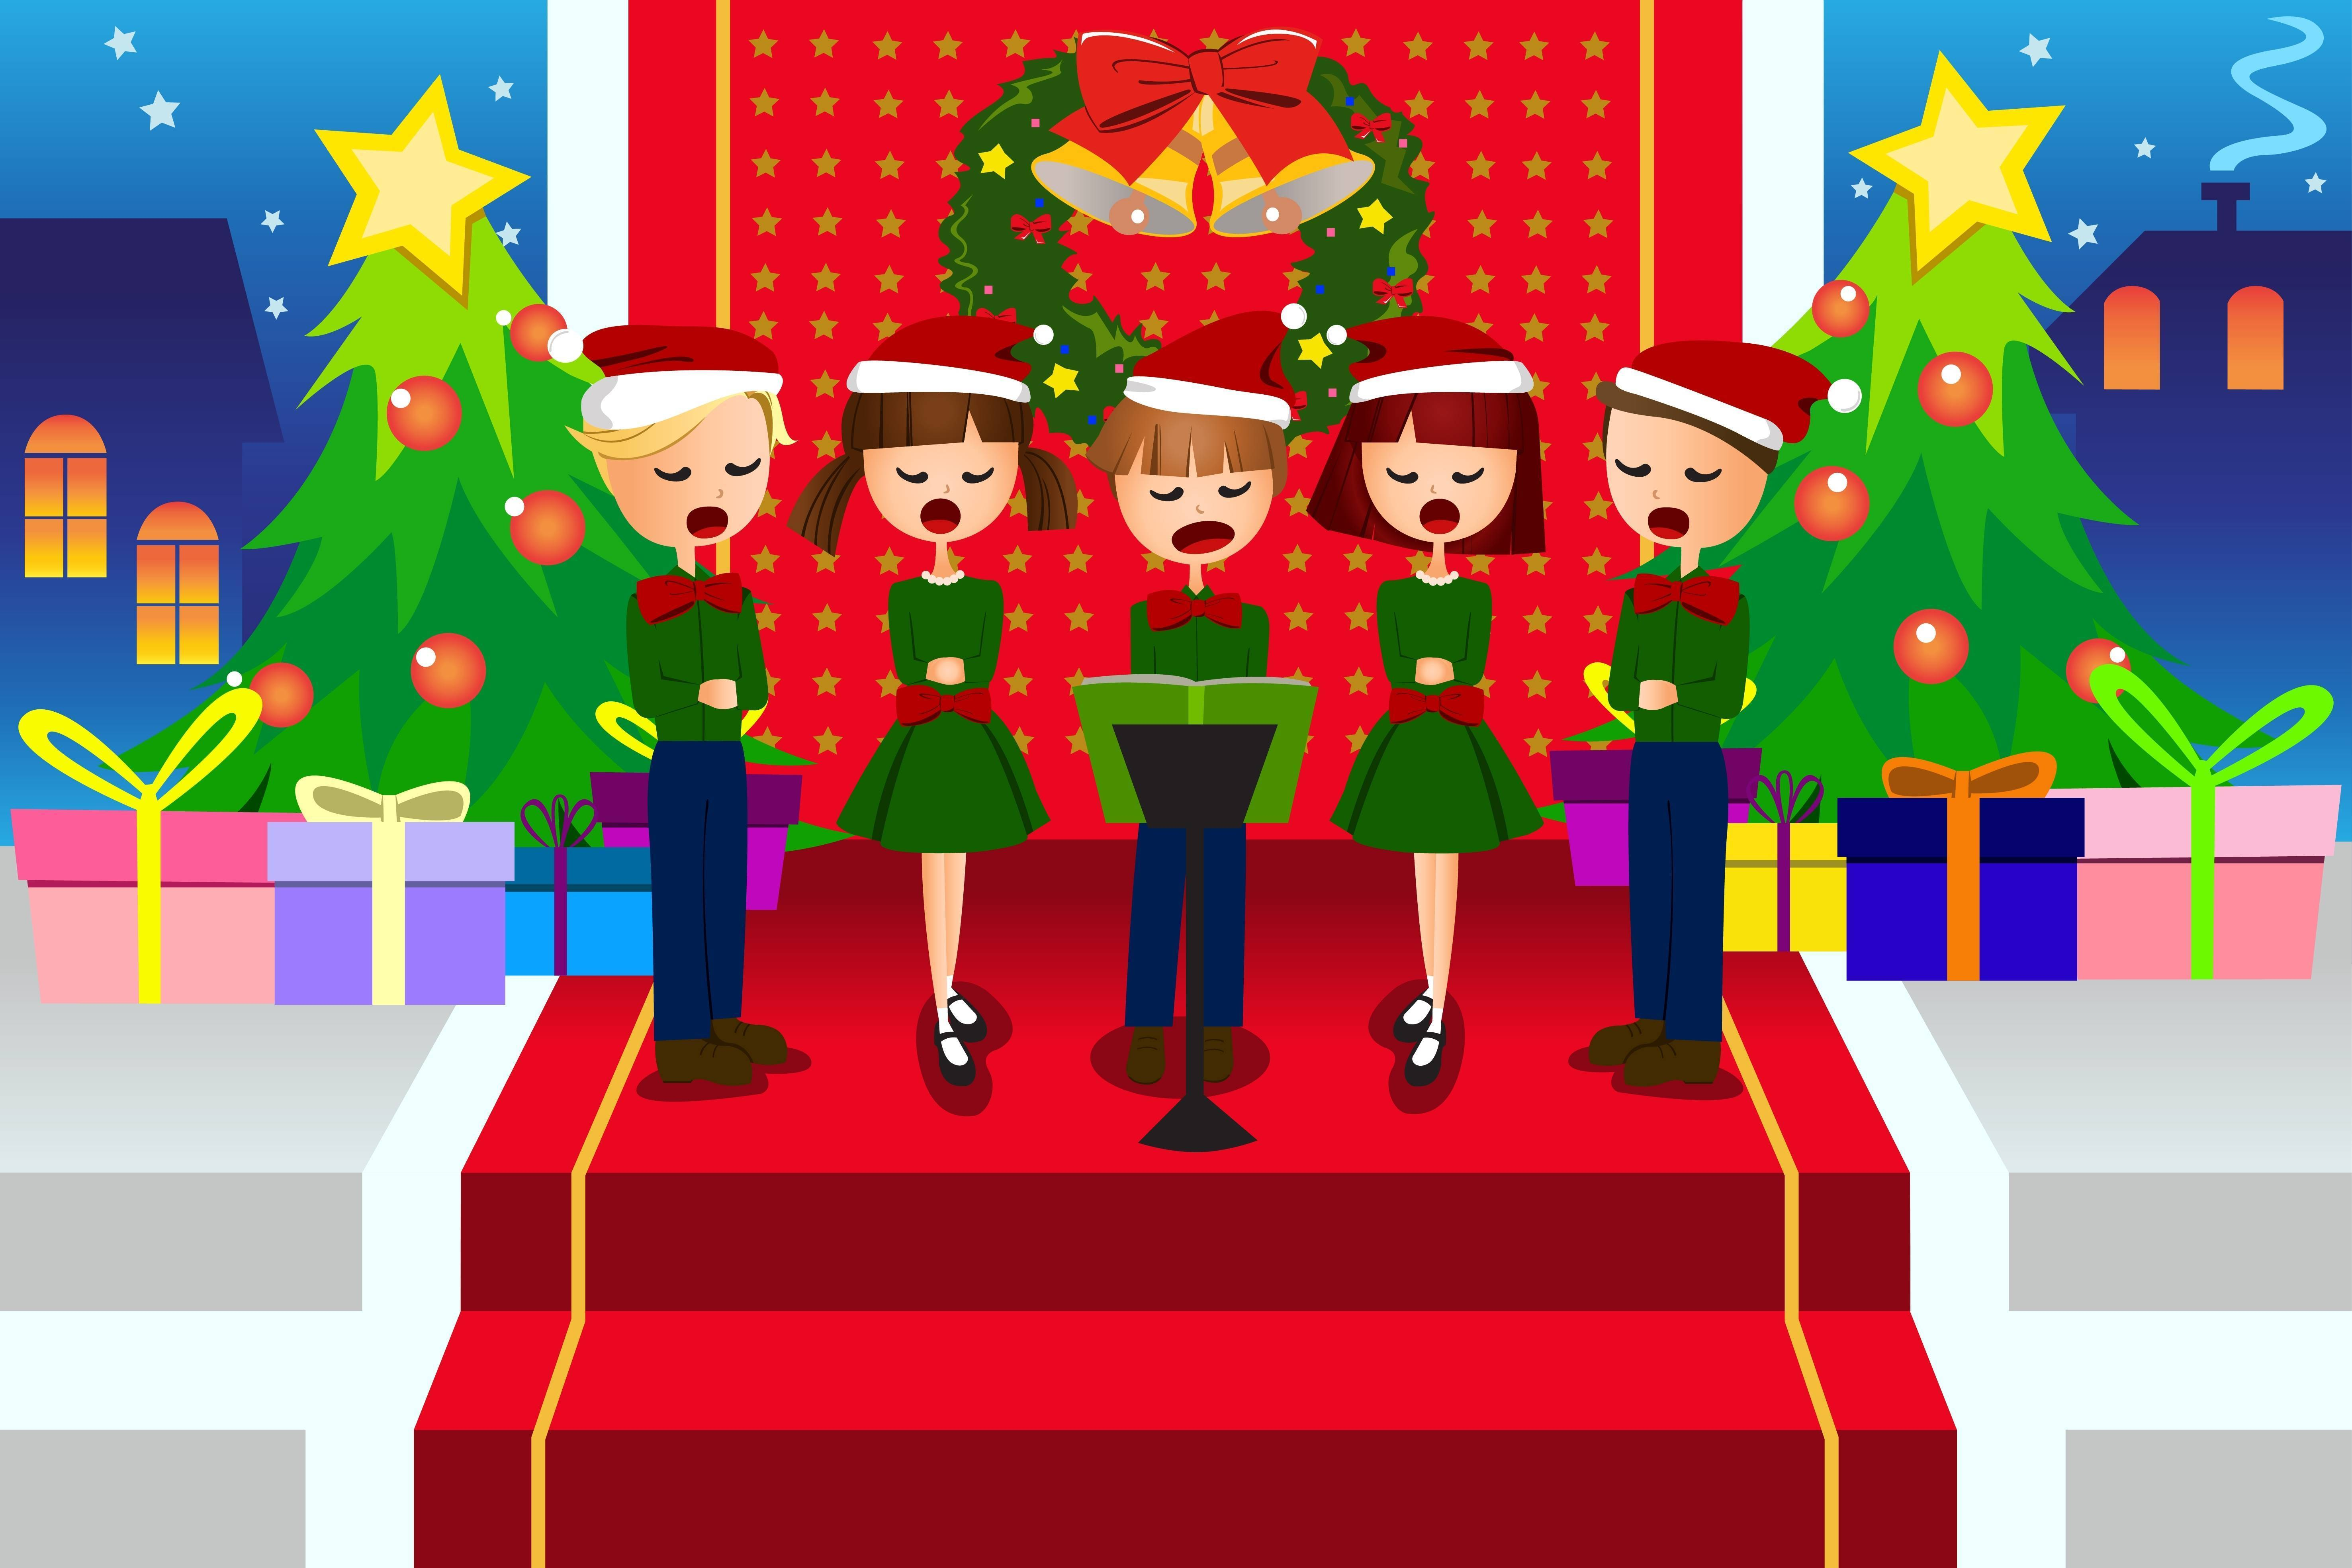 Linden Schools Will be 'Caroling for a Cause' to Spread Holiday Joy and Raise Funds for Toy Drive